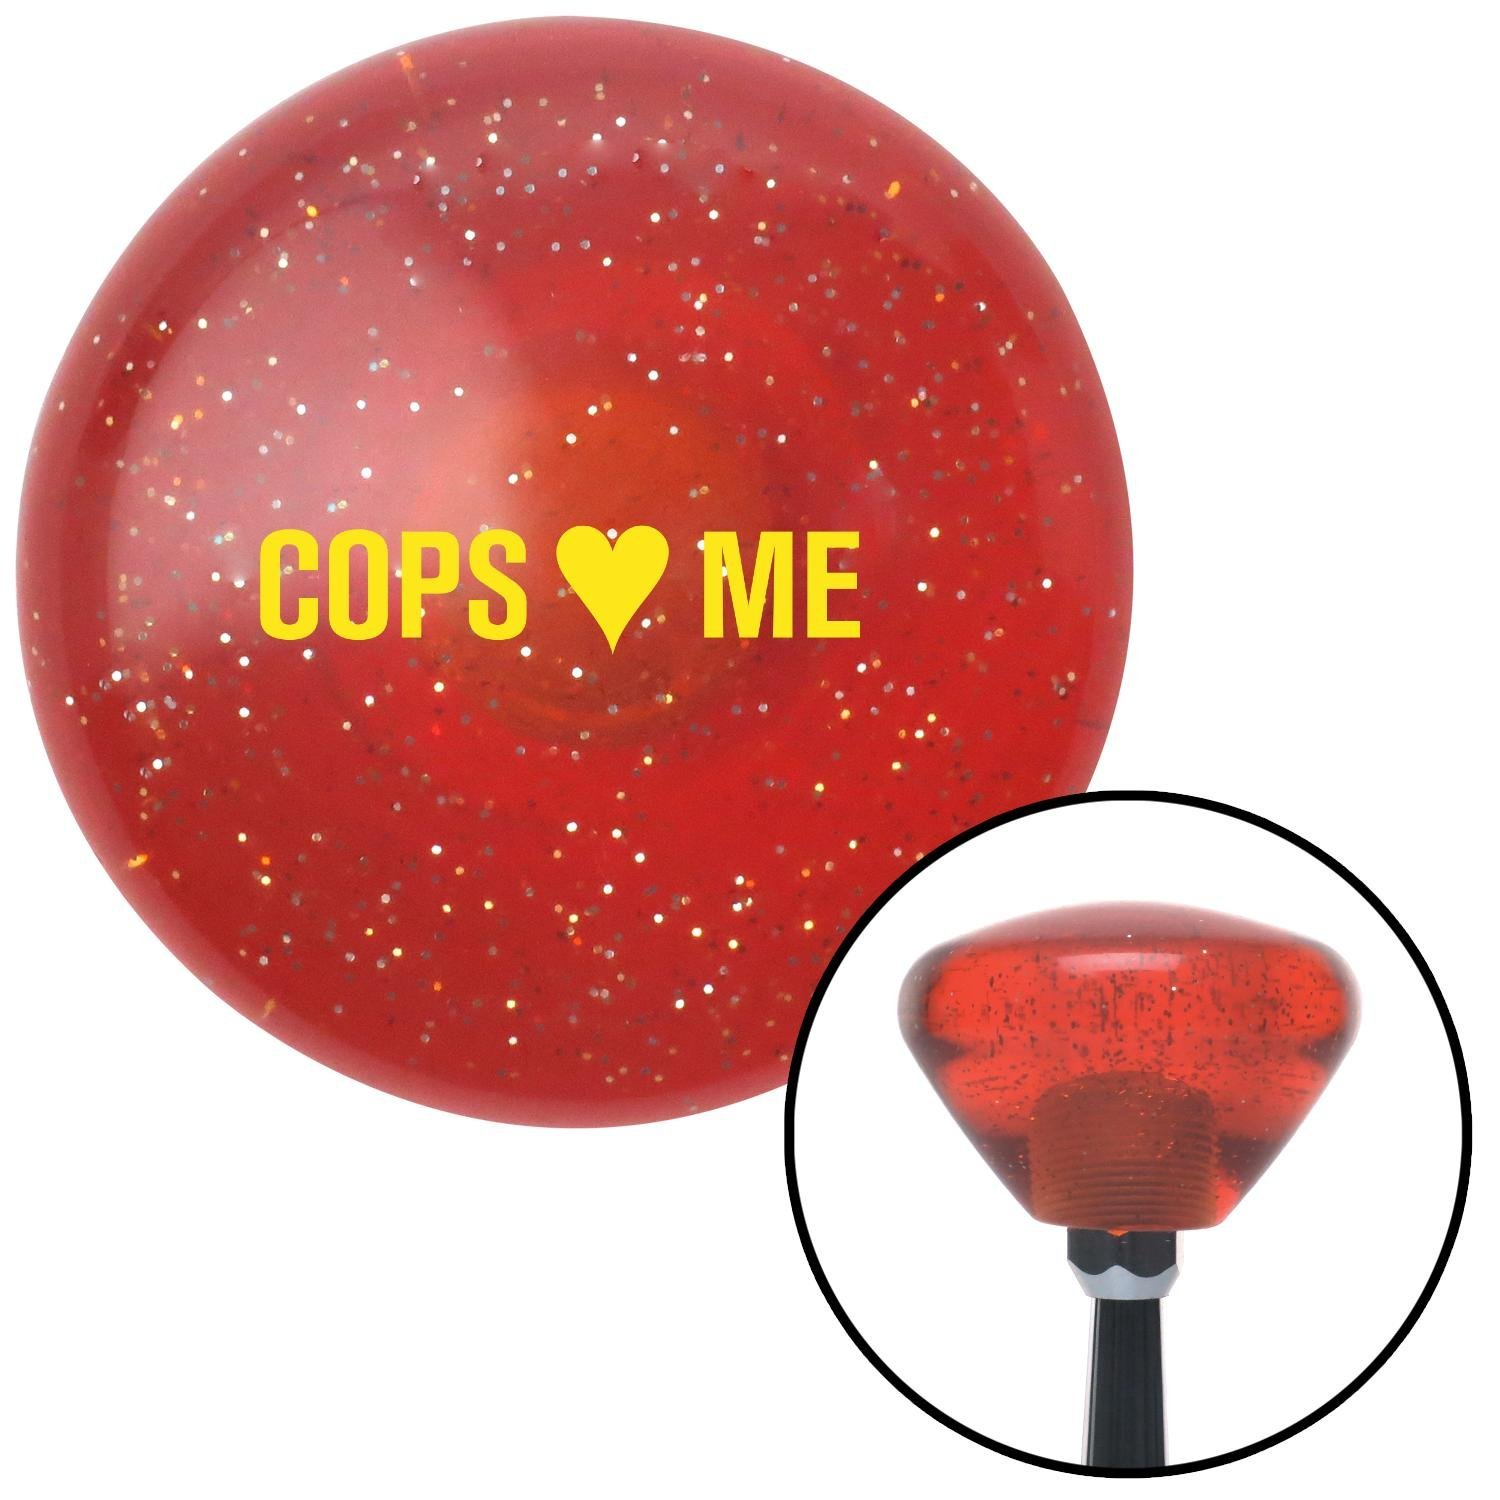 American Shifter 180463 Orange Retro Metal Flake Shift Knob with M16 x 1.5 Insert Yellow Cops 3 Me